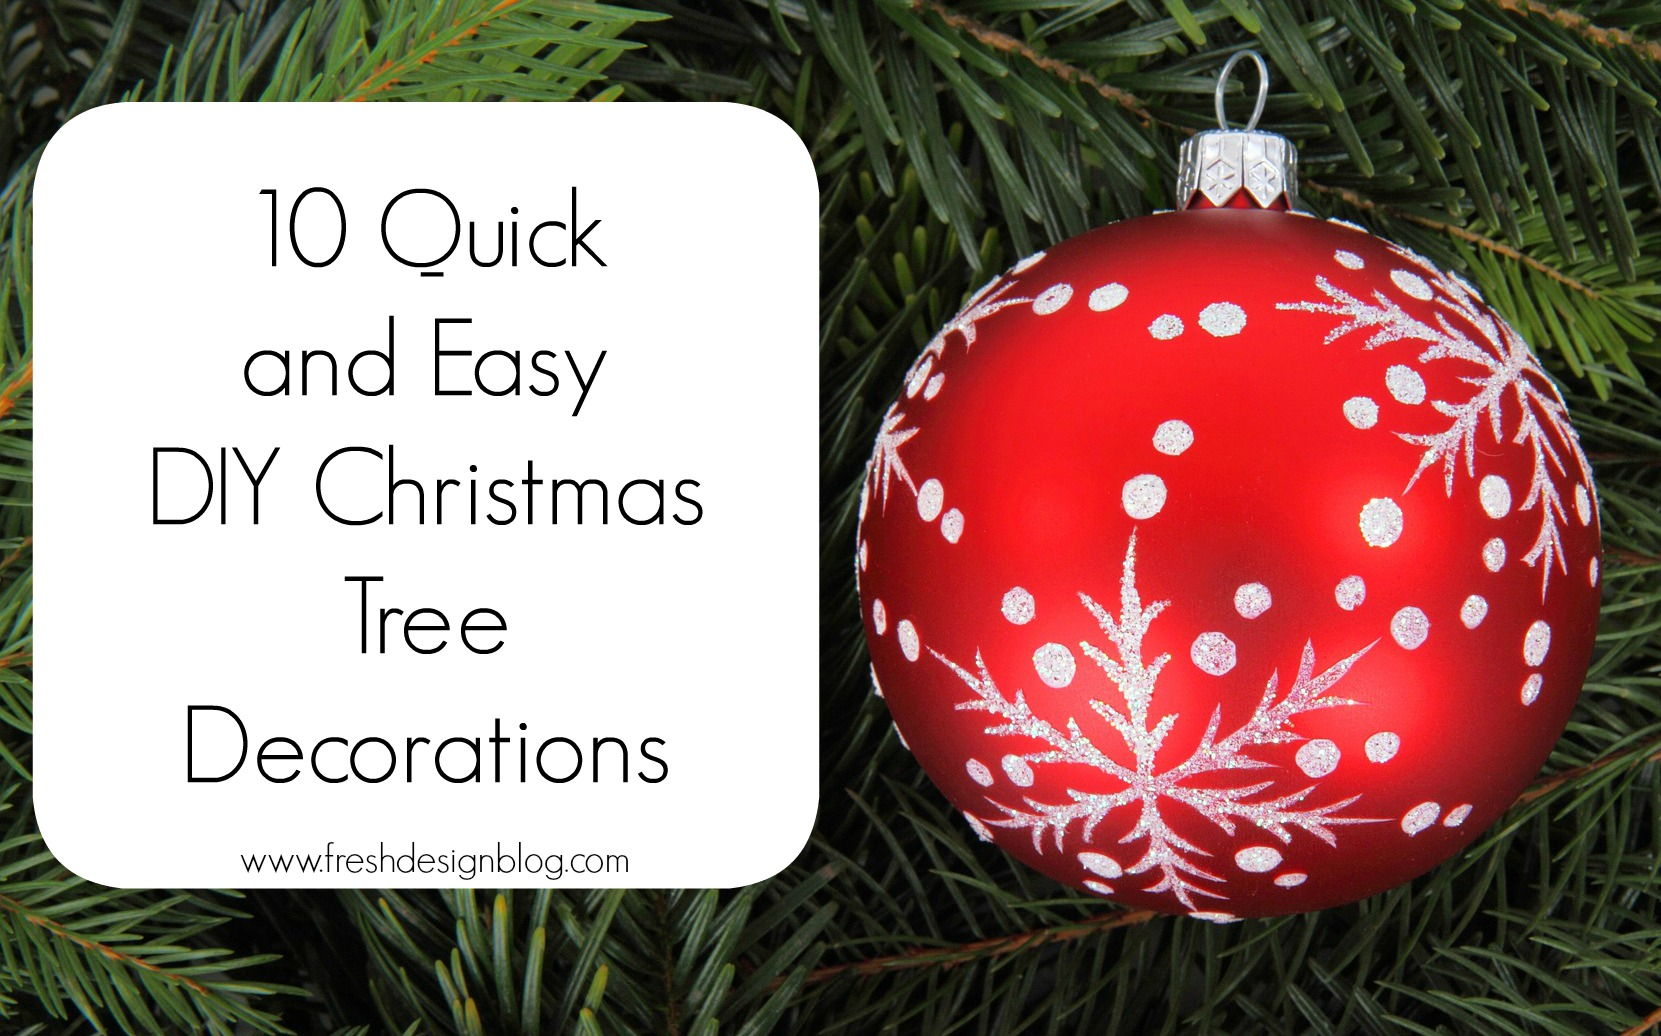 Quick and easy Christmas tree decorations to make at home